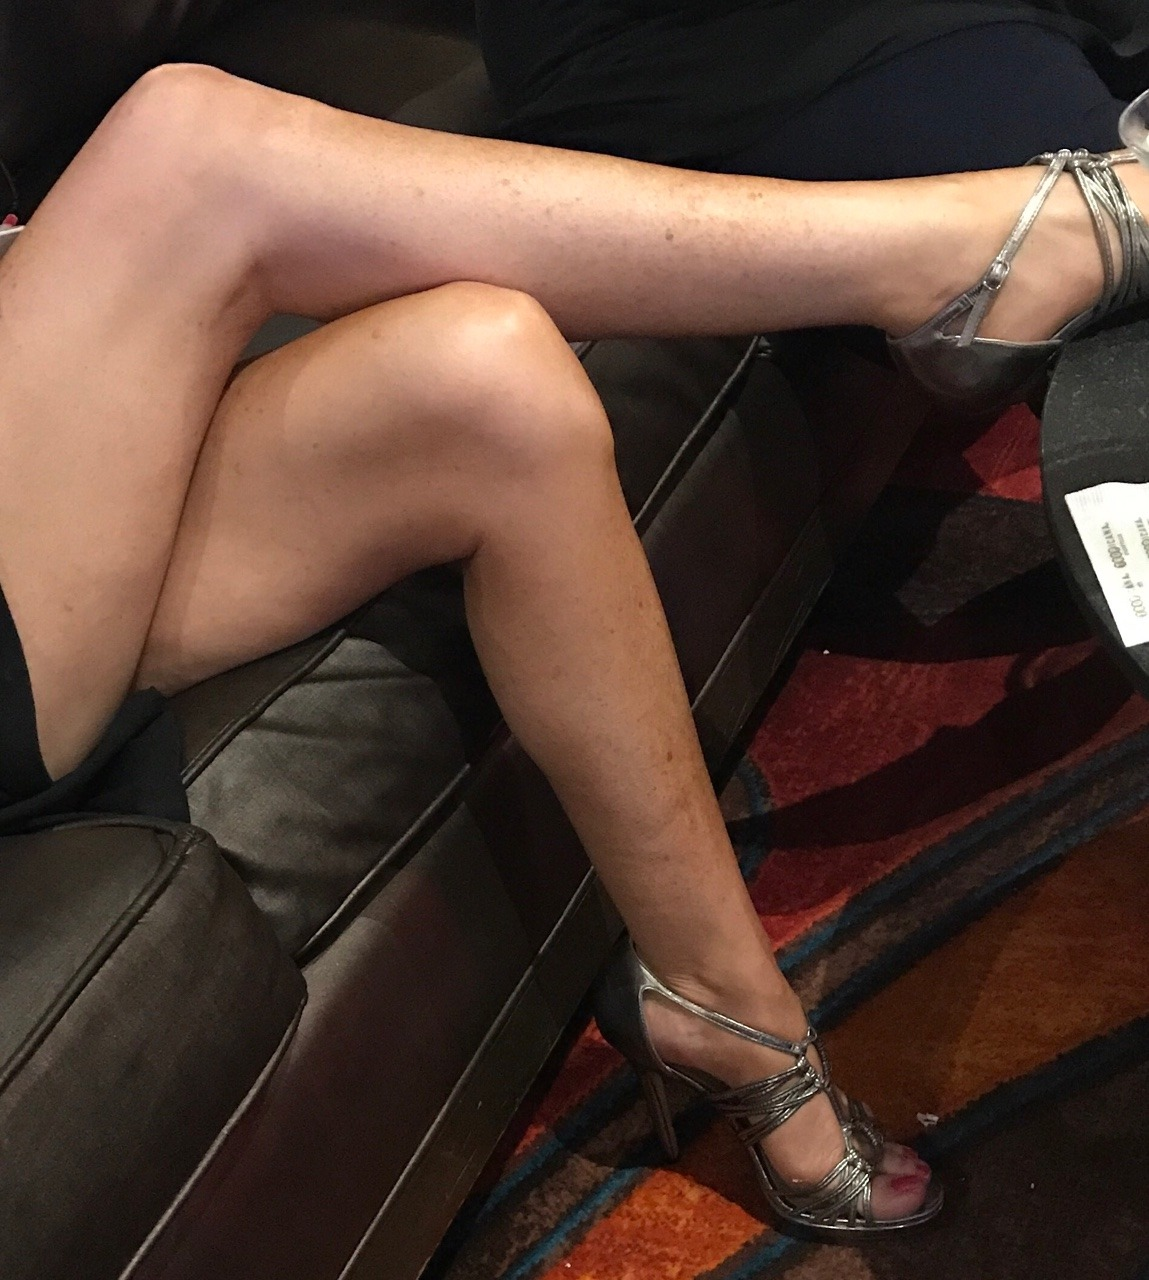 She keeps uncrossing her sexy legs whenever a good looking guy walks by , no panties